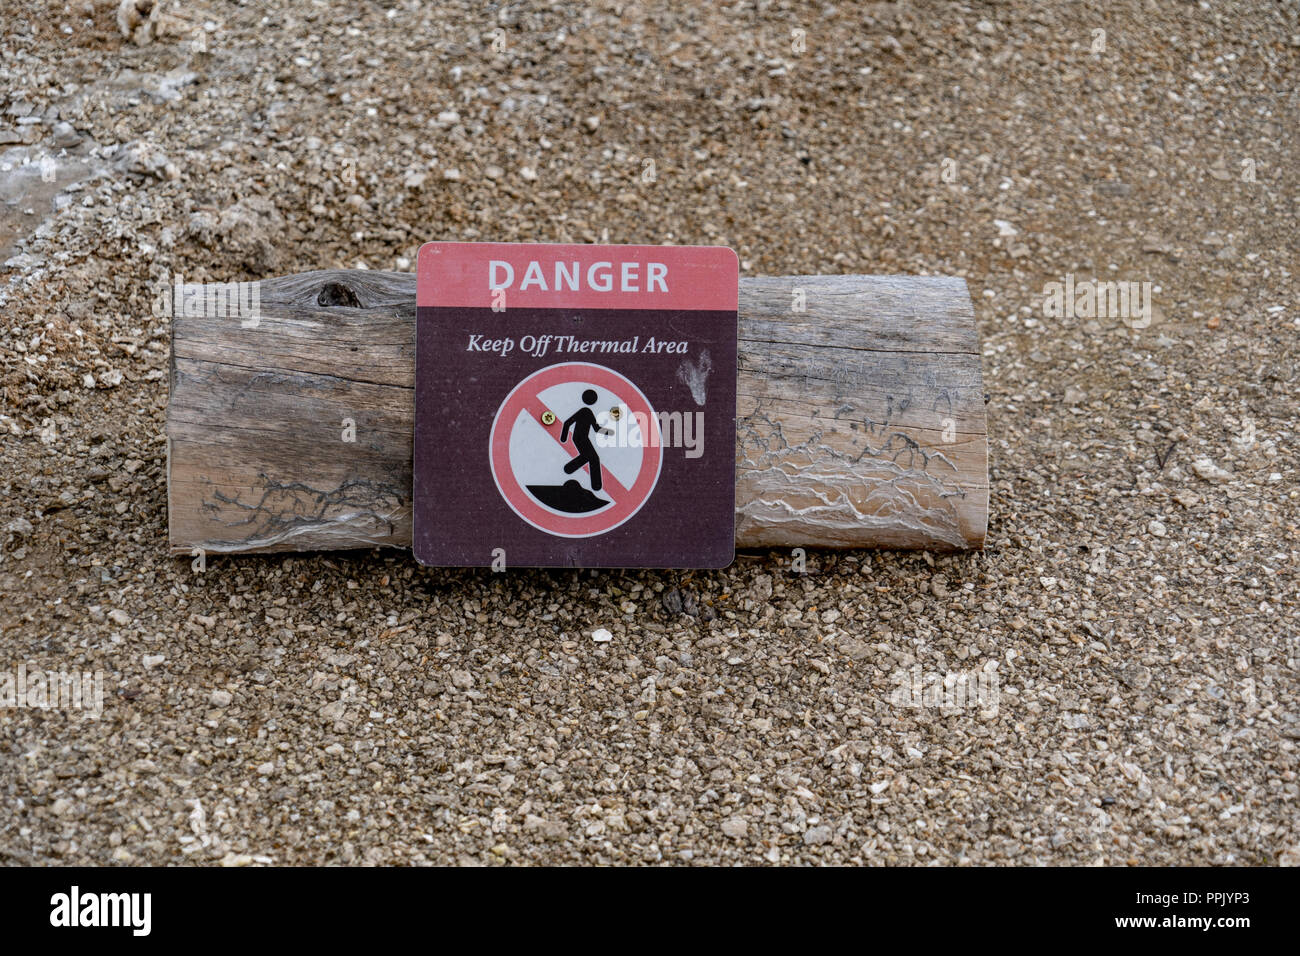 A log with a warning sign warns tourists and visitors to stay out of the thermal areas in Yellowstone National Park. Hot Spring pools reach high tempe - Stock Image